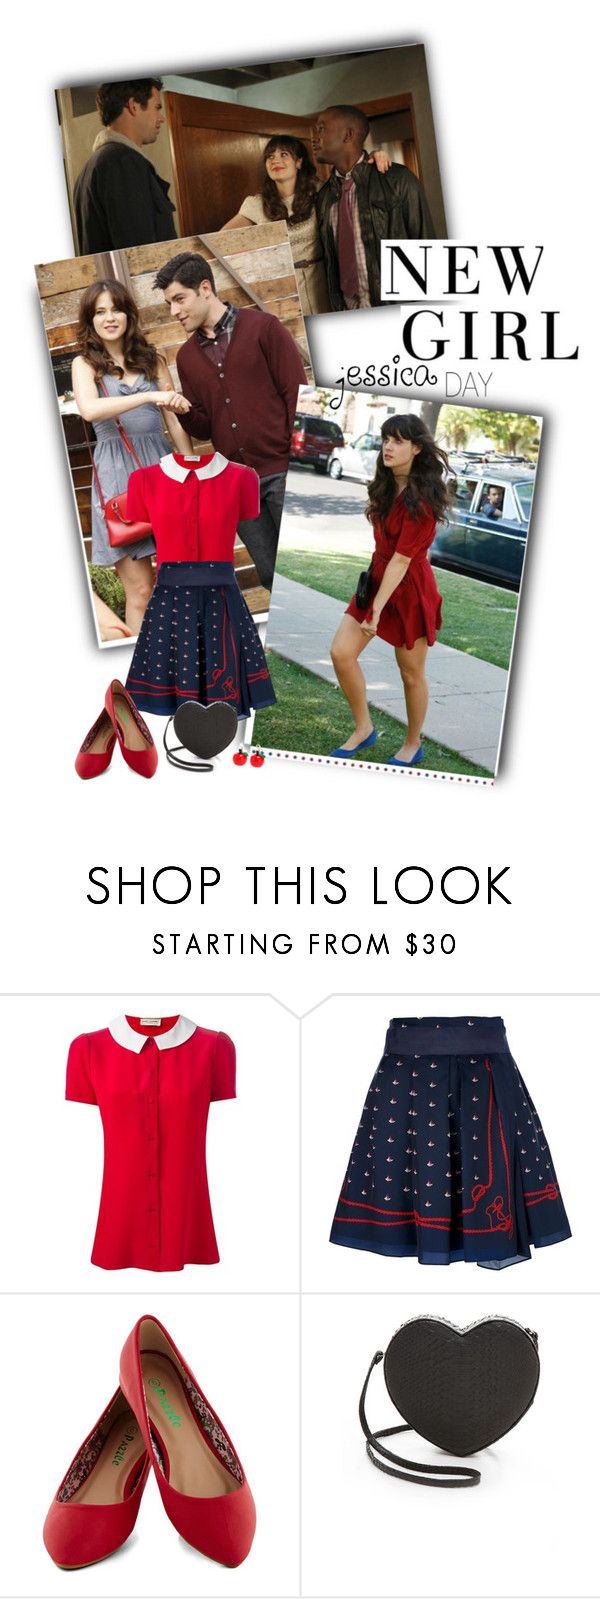 """Jessica Day: New Girl"" by priscilla12 ❤ liked on Polyvore featuring Zooey, Yves Saint Laurent, Sacai, Gelareh Mizrahi, Irregular Choice, Lauren Ralph Lauren, women's clothing, women, female and woman"